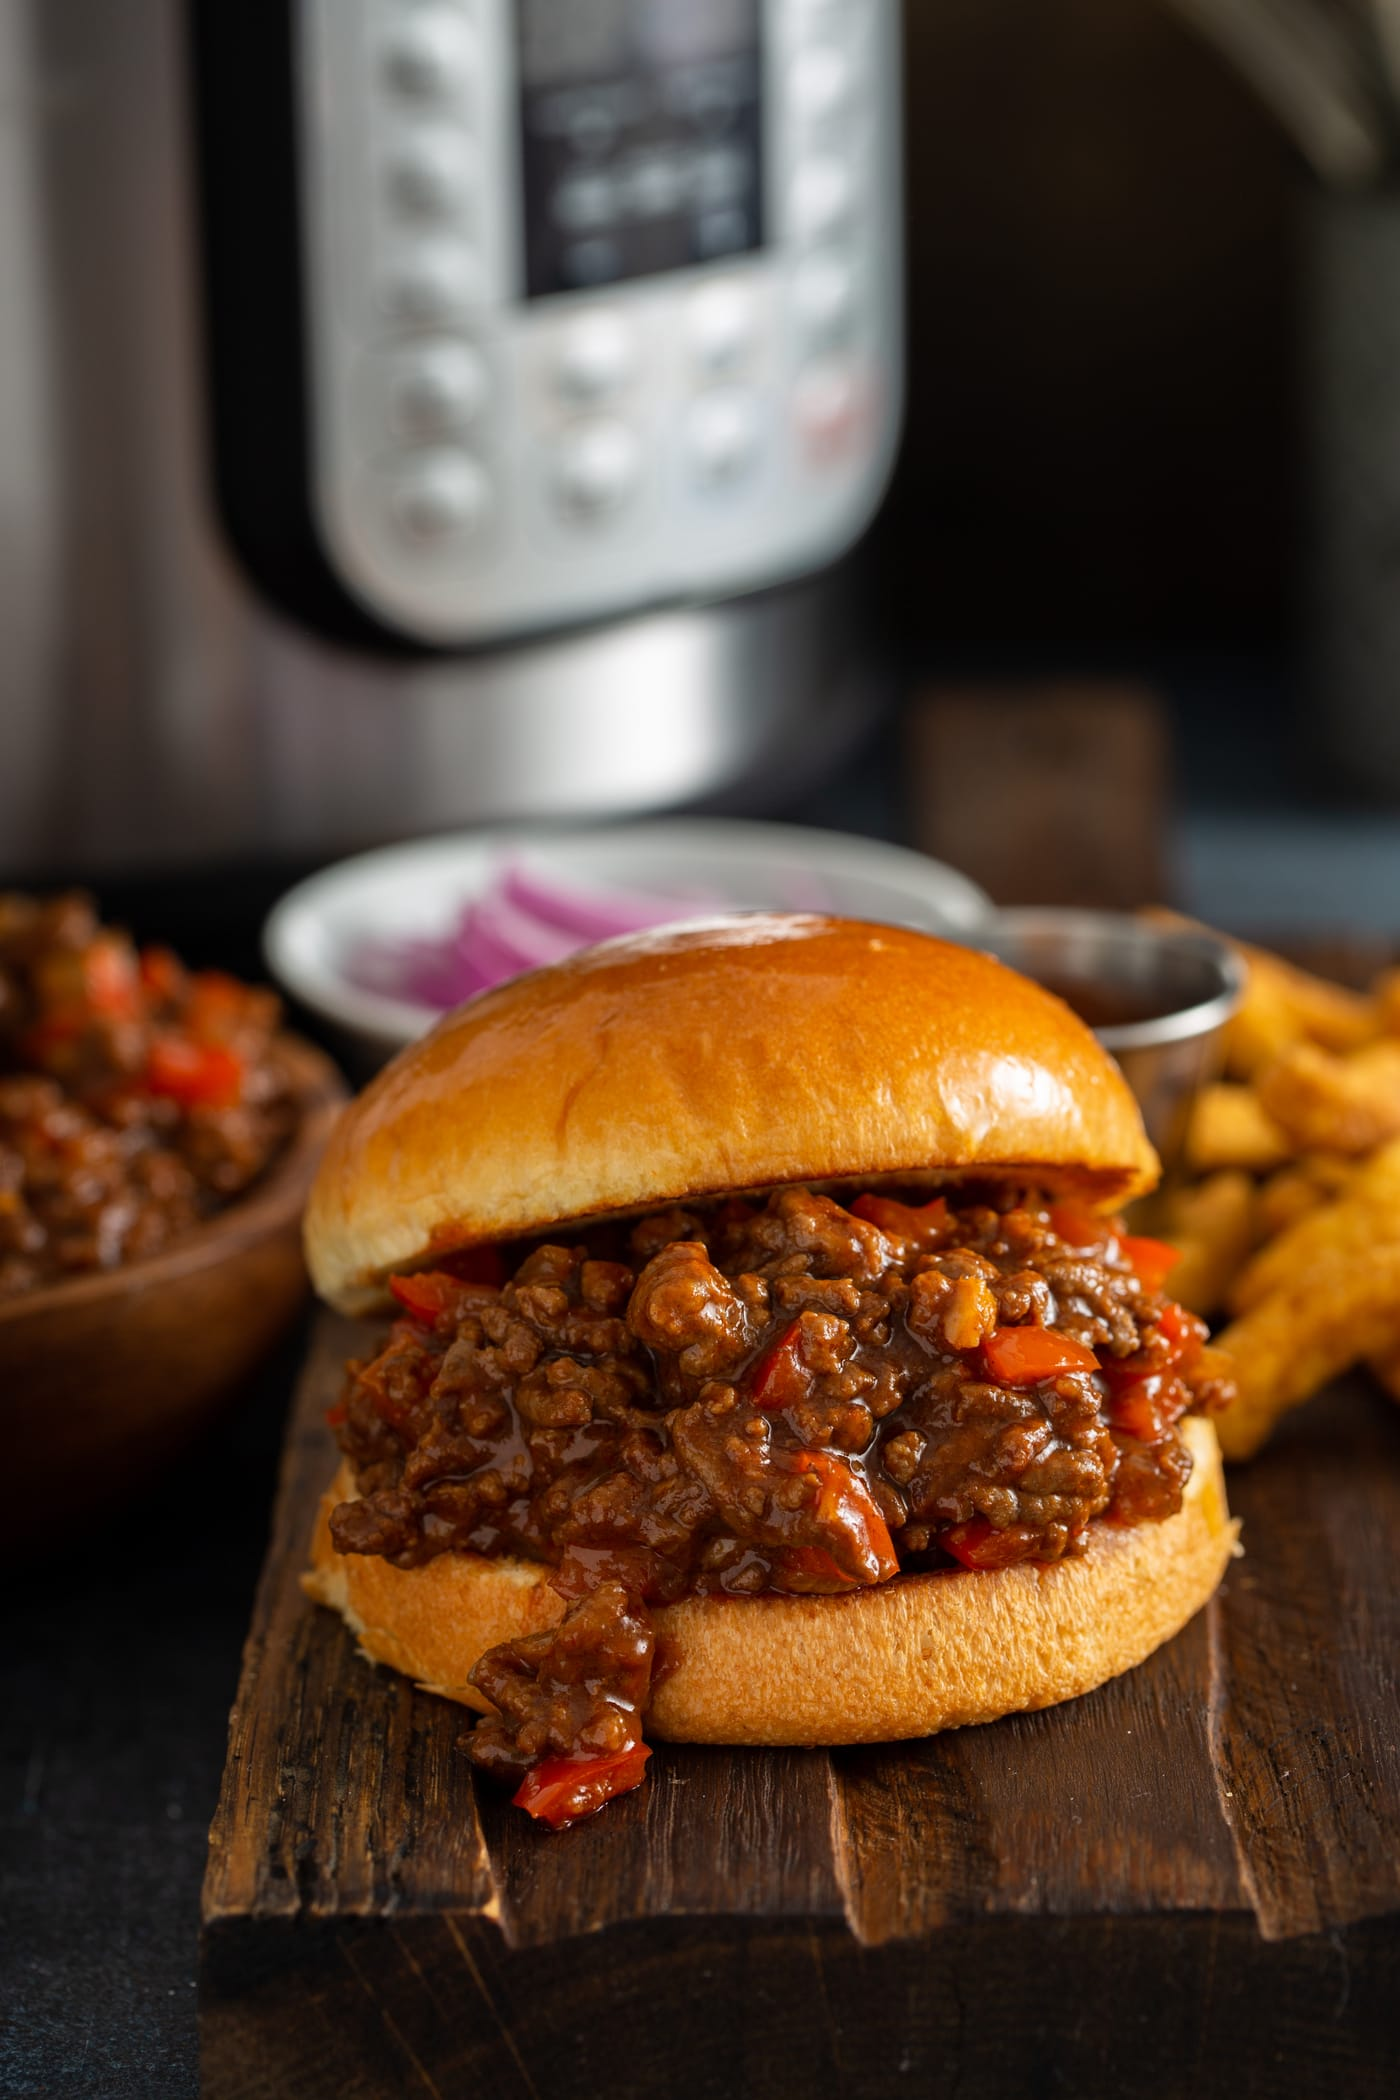 A toasted bun filled with sloppy joes filling. there is a bowl of sloppy joe, a bowl of sliced red onions, some french fries and an instant pot in the background.